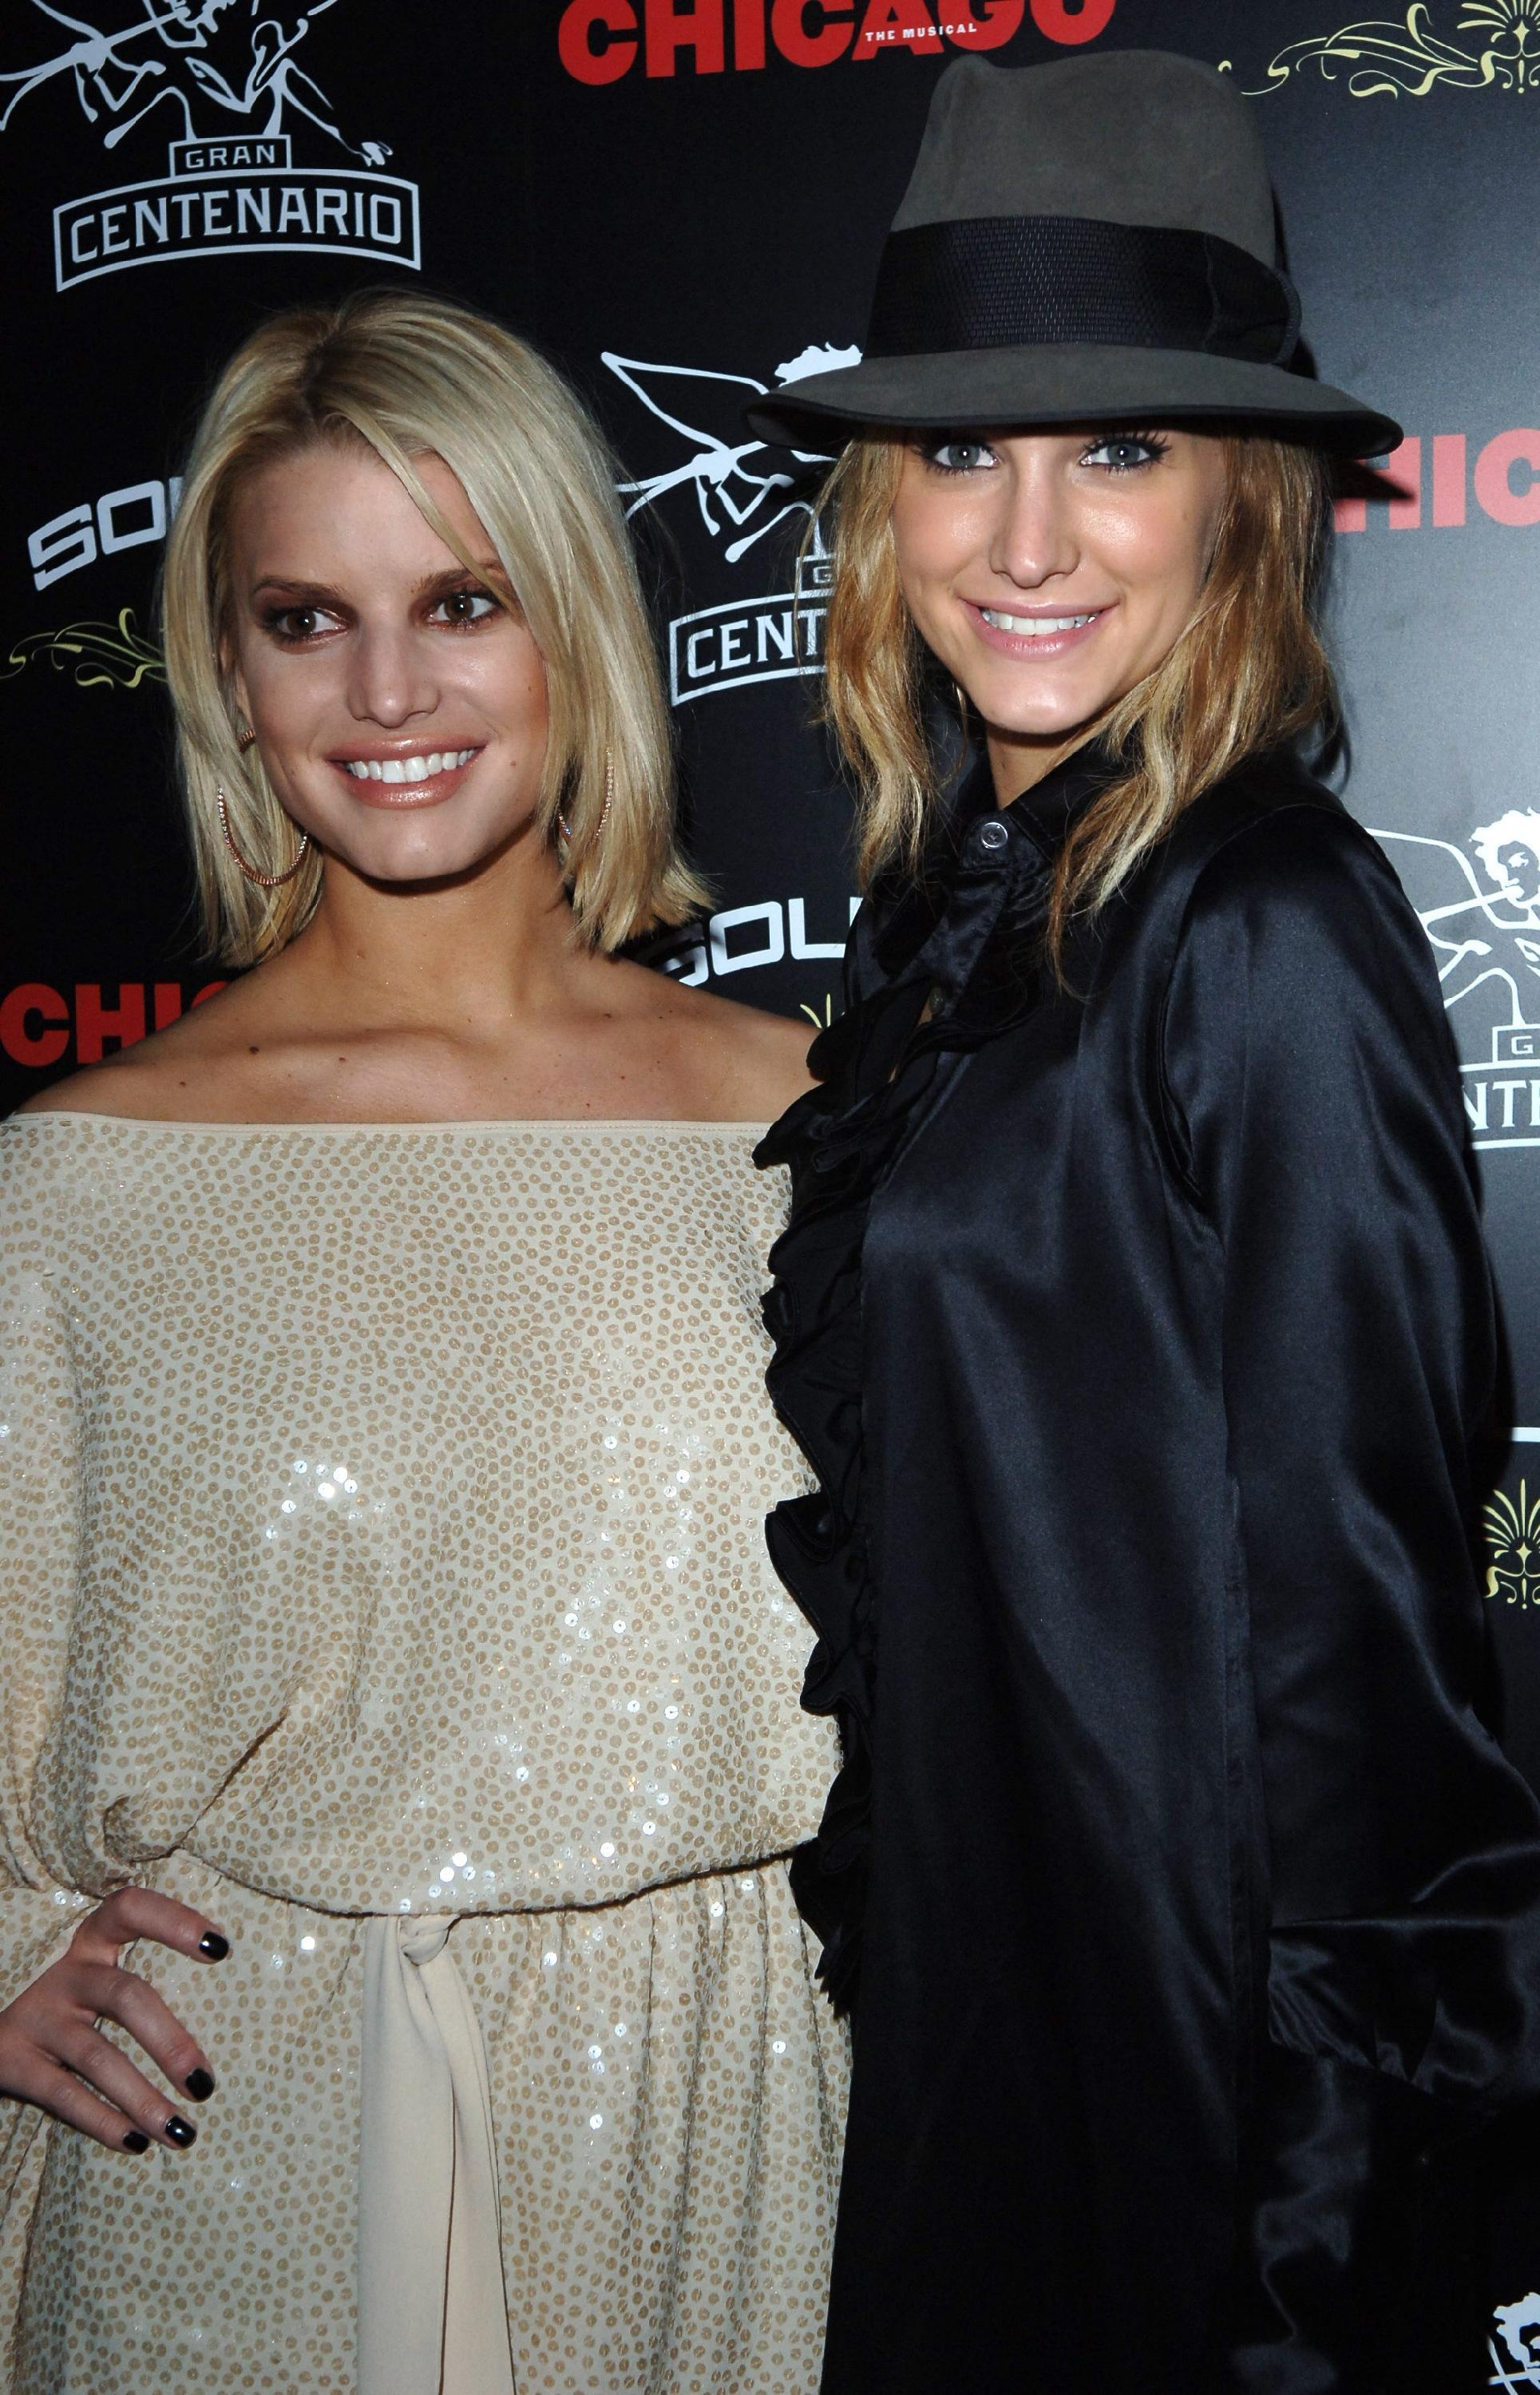 Ashlee Simpson and Jessica Simpson Afterparty for the musical Chicago held at the Sound Nightclub London, England - 25.09.06  Featuring: Ashlee Simpson and Jessica Simpson Where: London, United Kingdom When: 25 Sep 2006 Credit: Daniel Deme / WENN